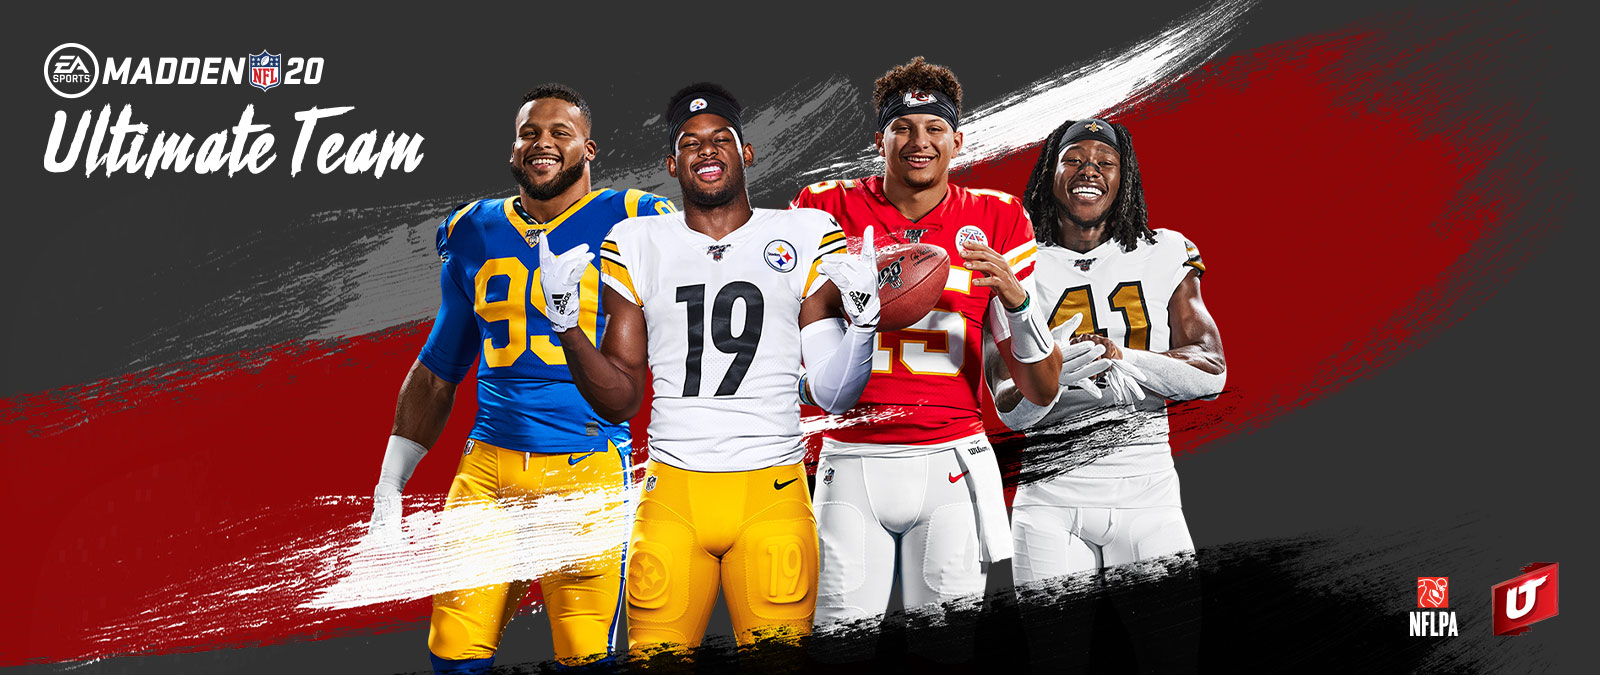 EA Sports, Madden NFL 20, Ultimate Team, Ultimate team-logo, NFLPA-logo, vier football-spelers poseren